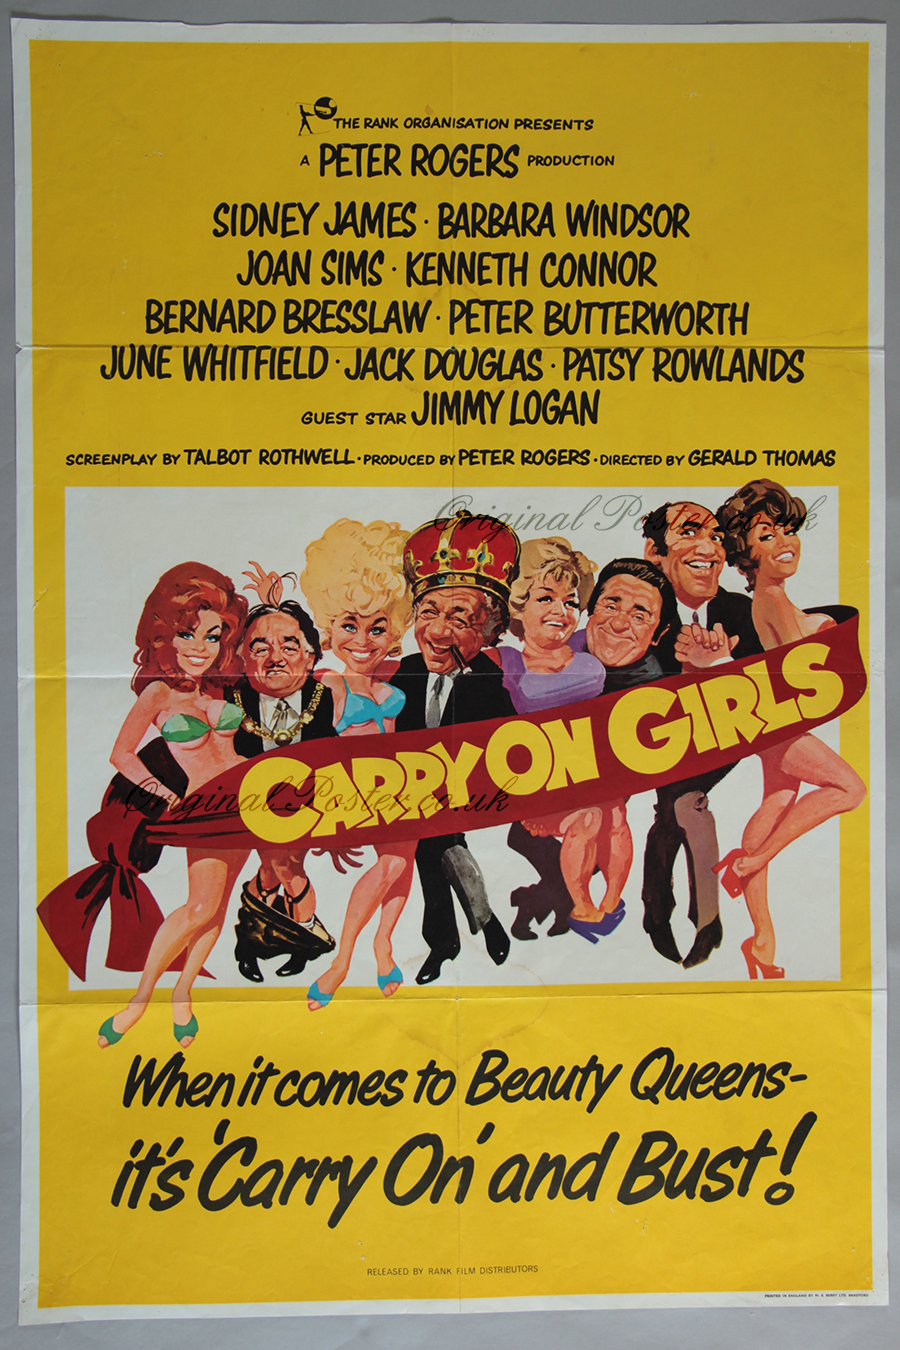 Carry on Girls, Original Vintage Film Poster | Original ...